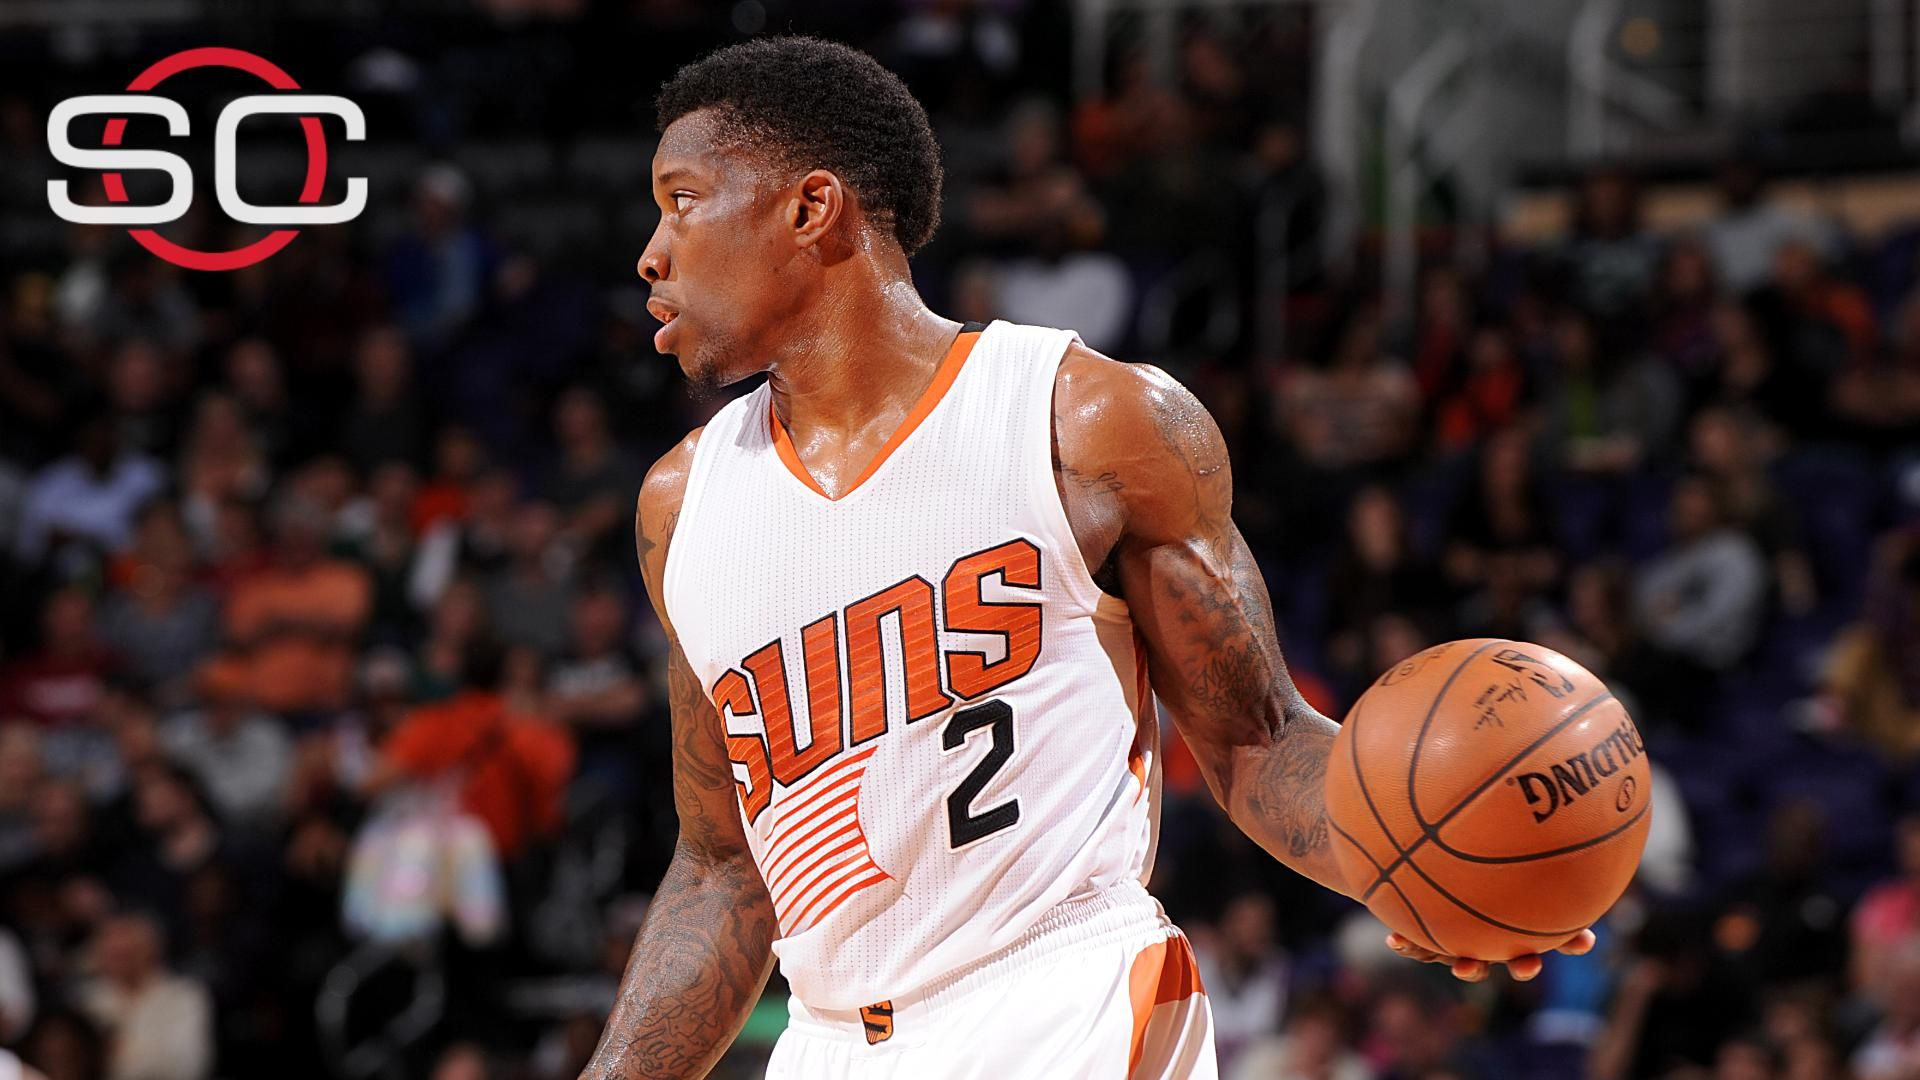 How will the Suns respond to losing Bledsoe?